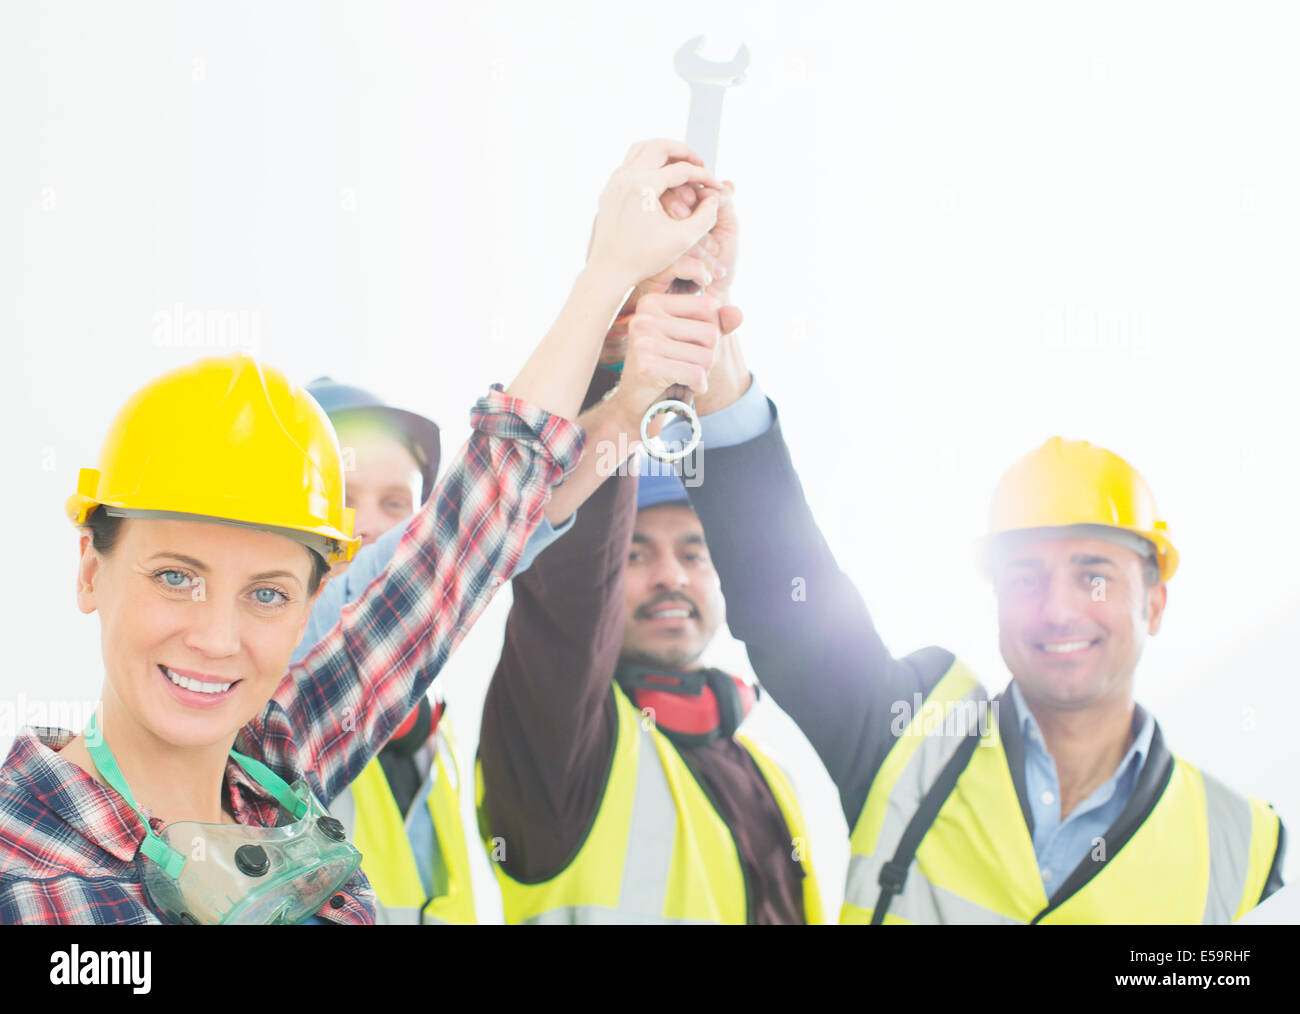 Portrait of construction workers joining hands - Stock Image